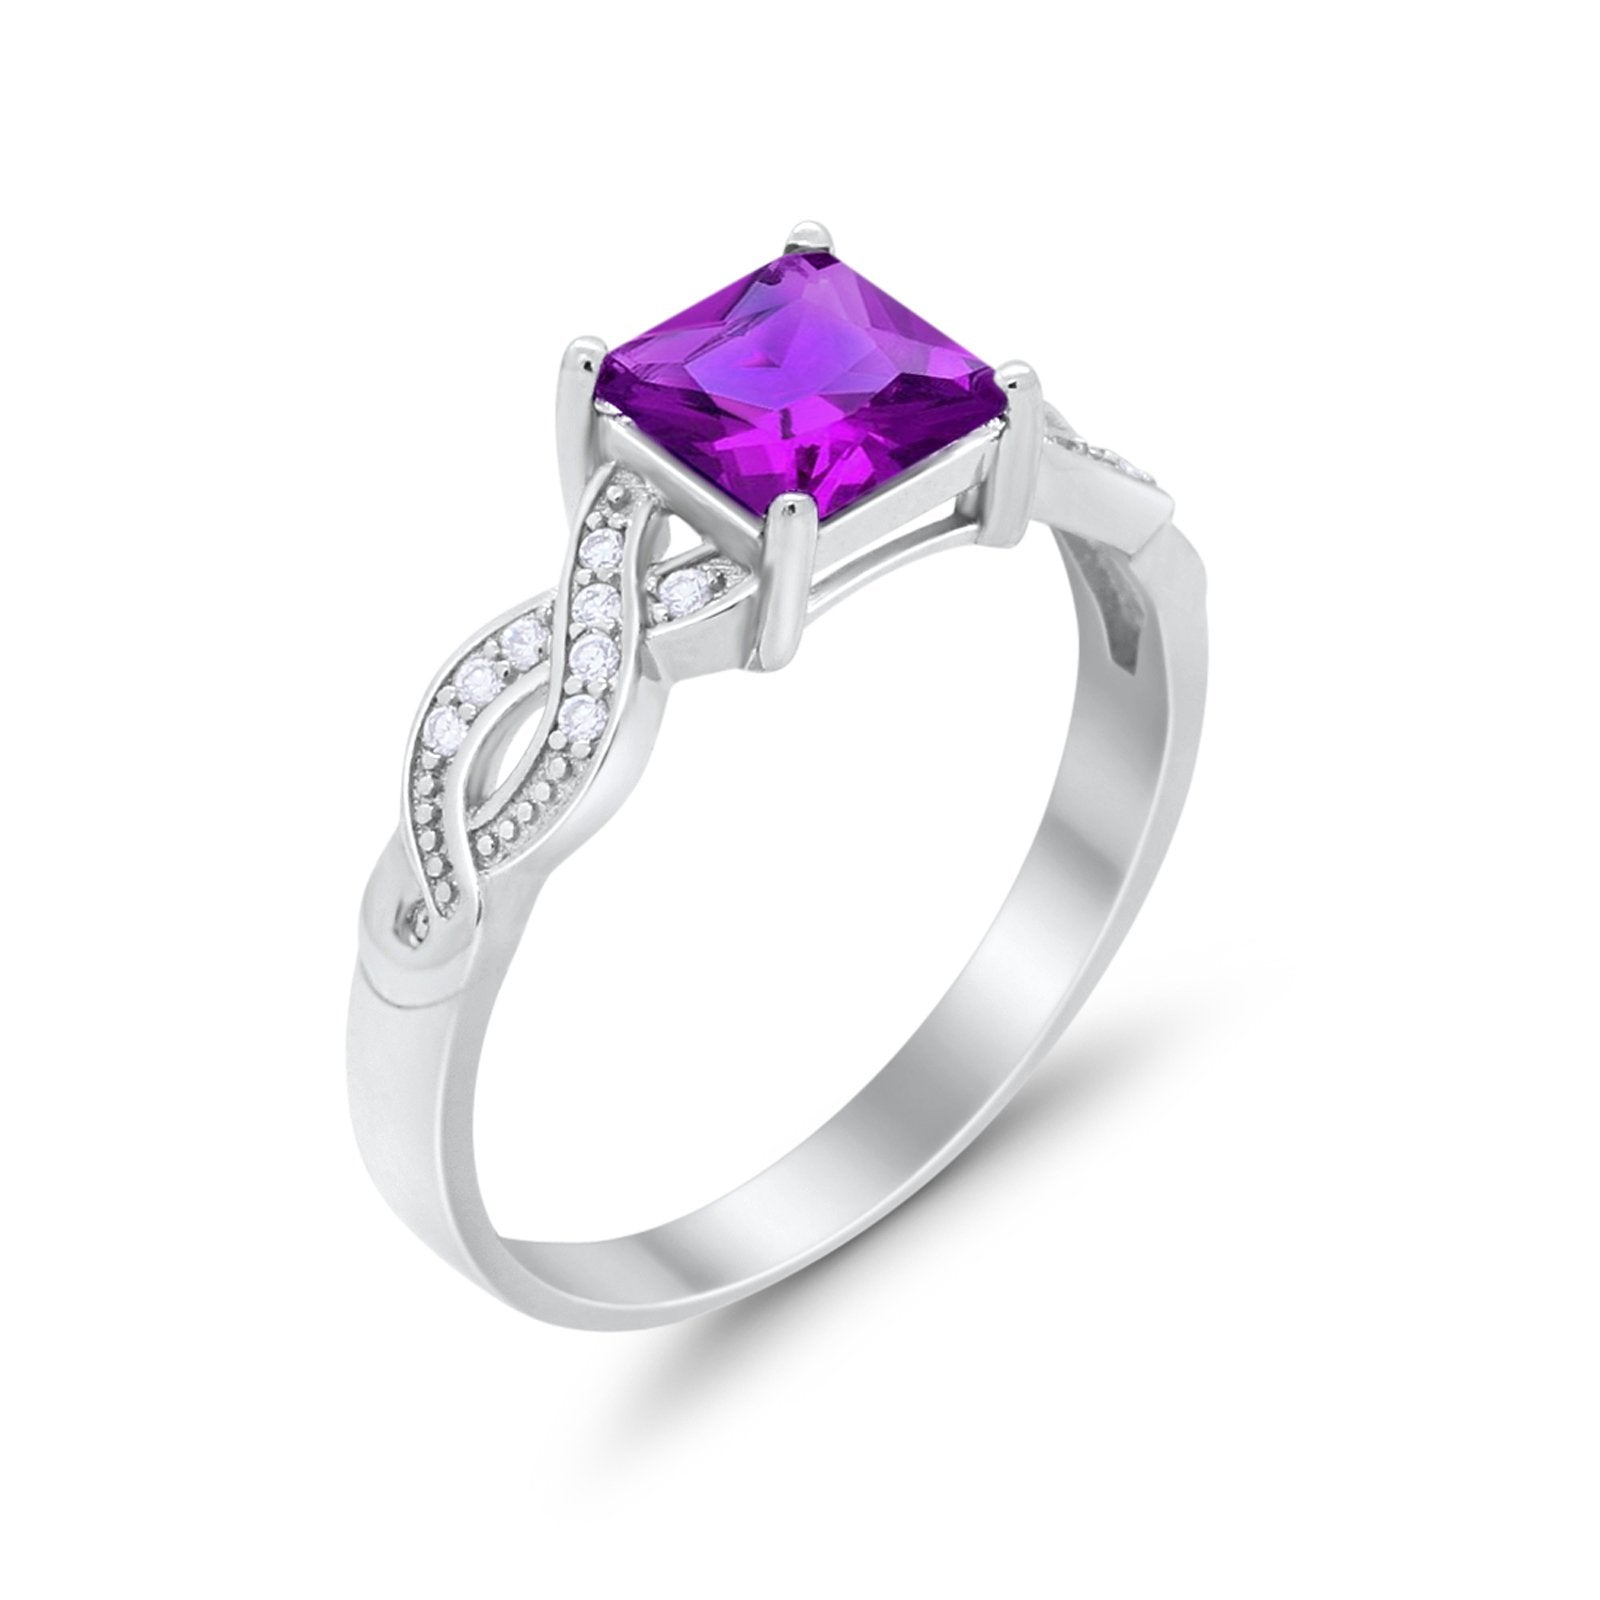 Solitaire Infinity Shank Ring Princess Cut Simulated Amethyst CZ 925 Sterling Silver